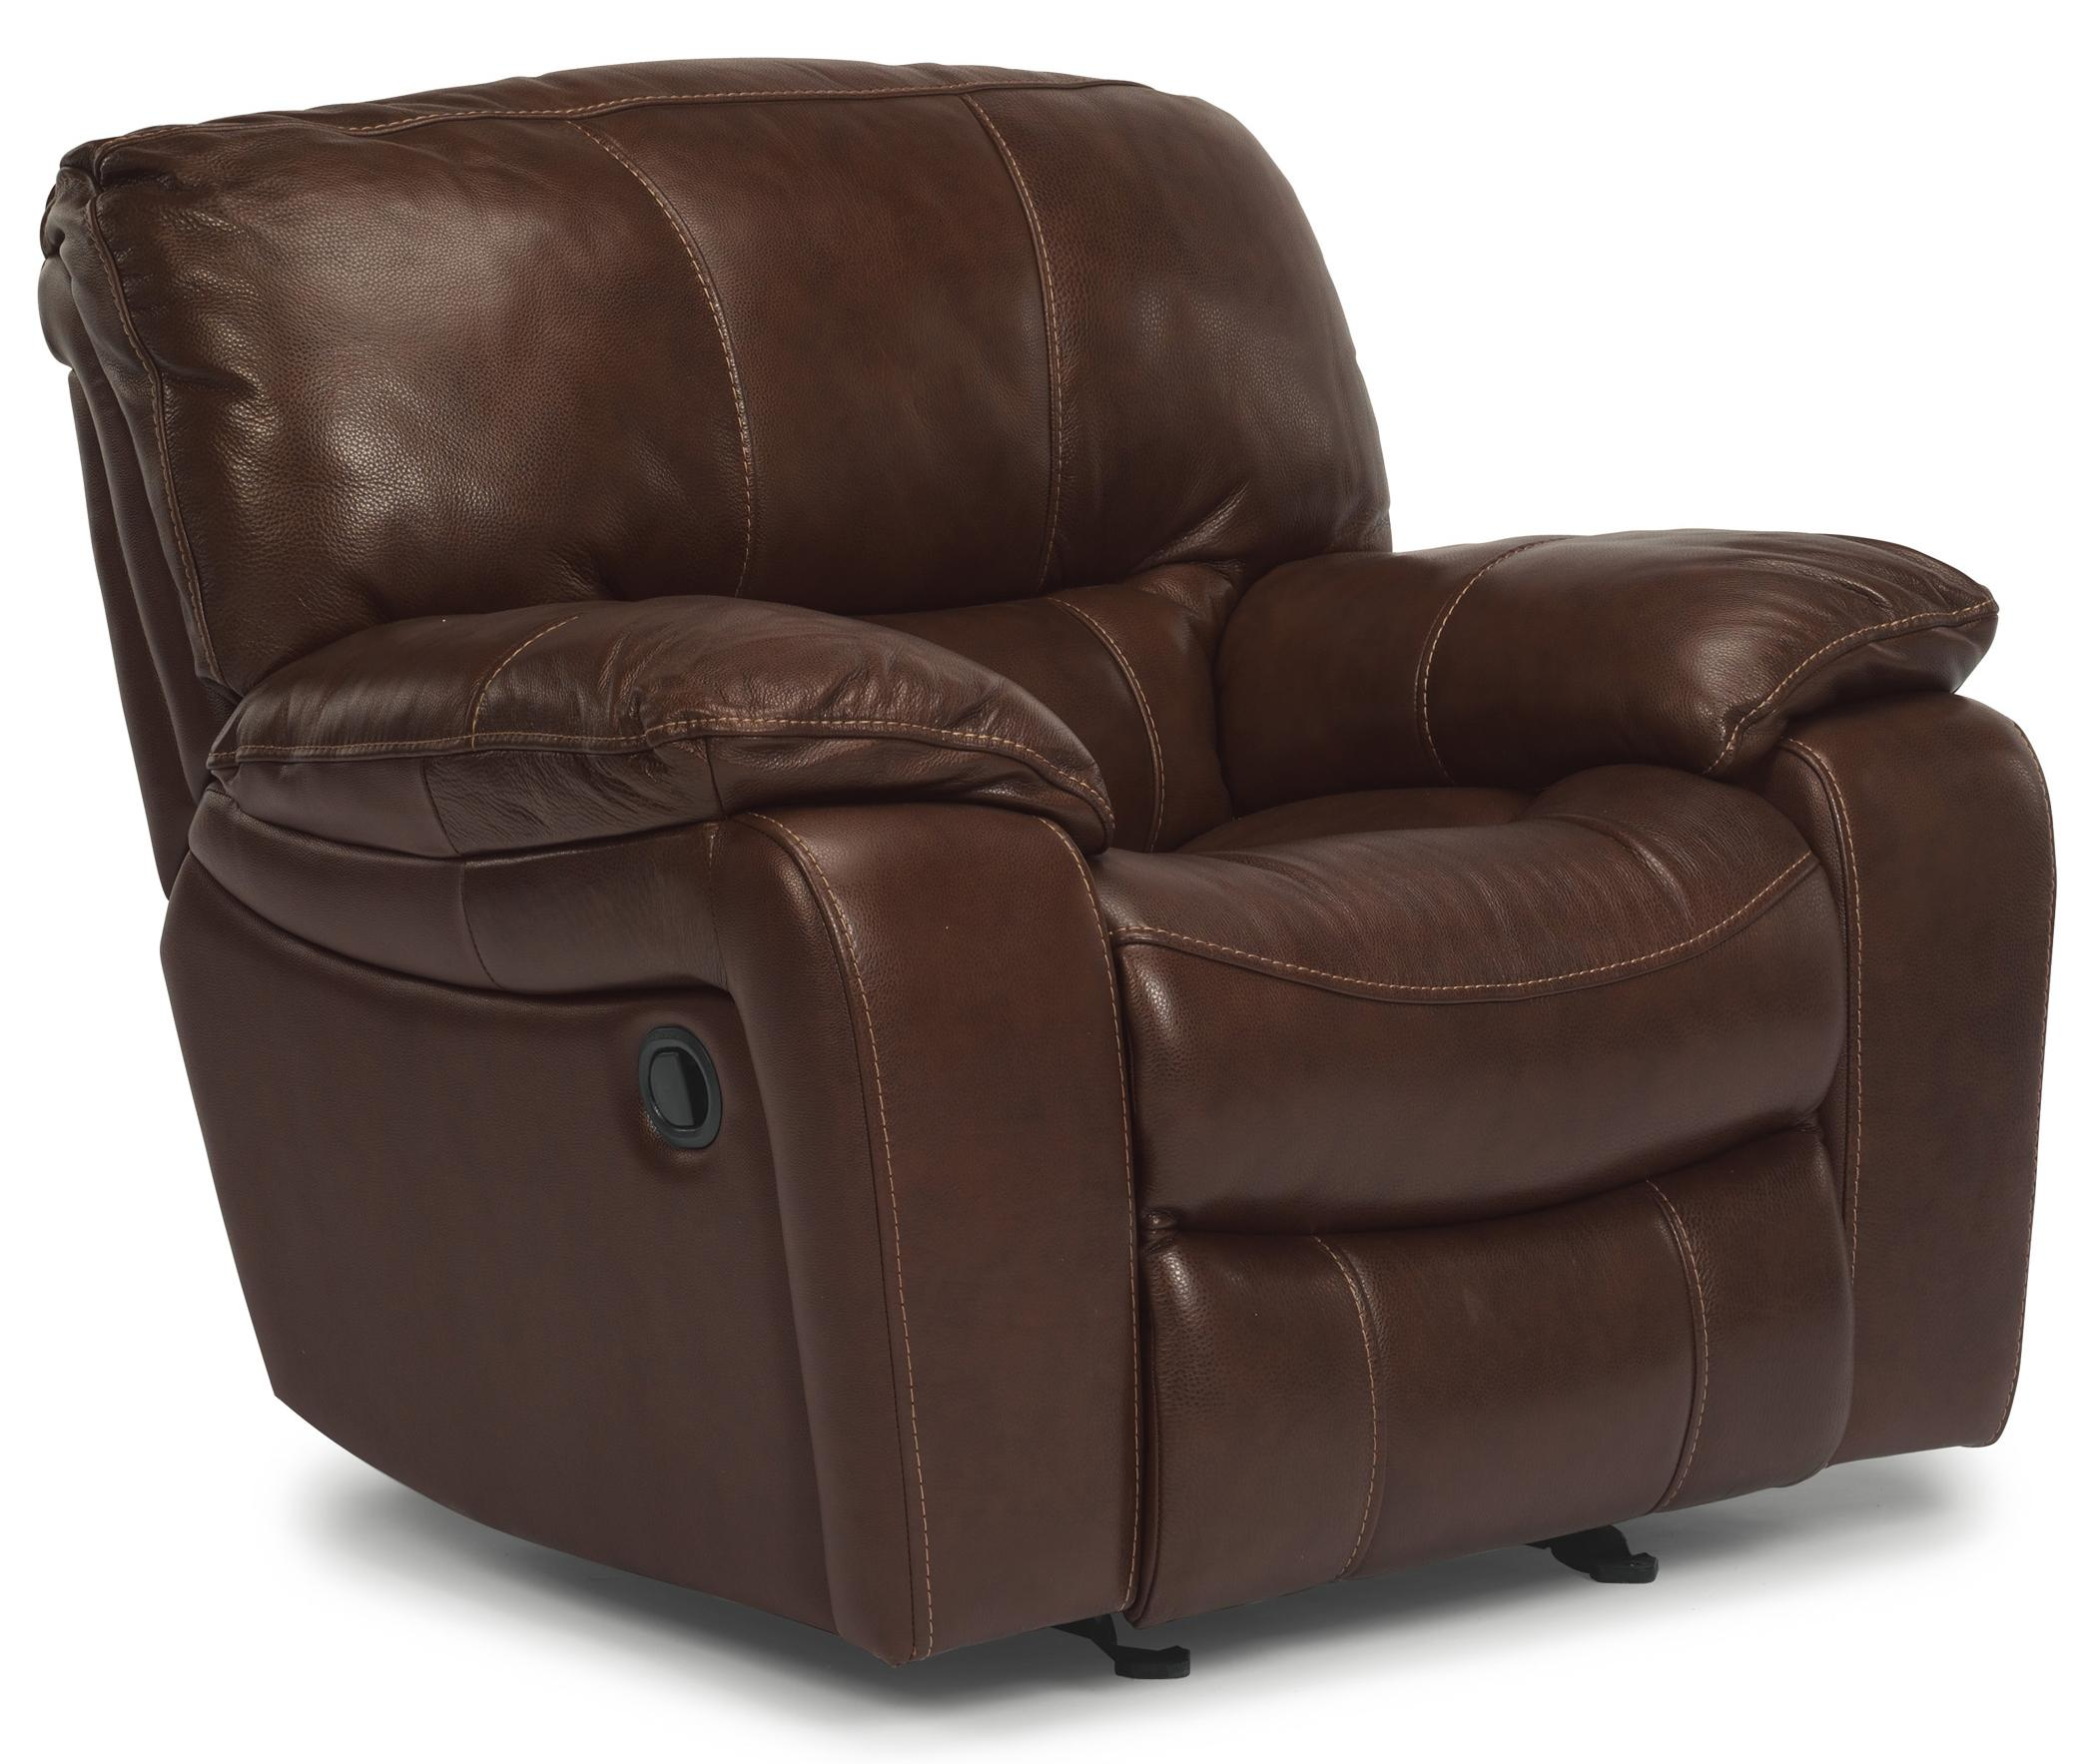 Flexsteel Latitudes - Grandview Gliding Recliner - Item Number: 1241-54